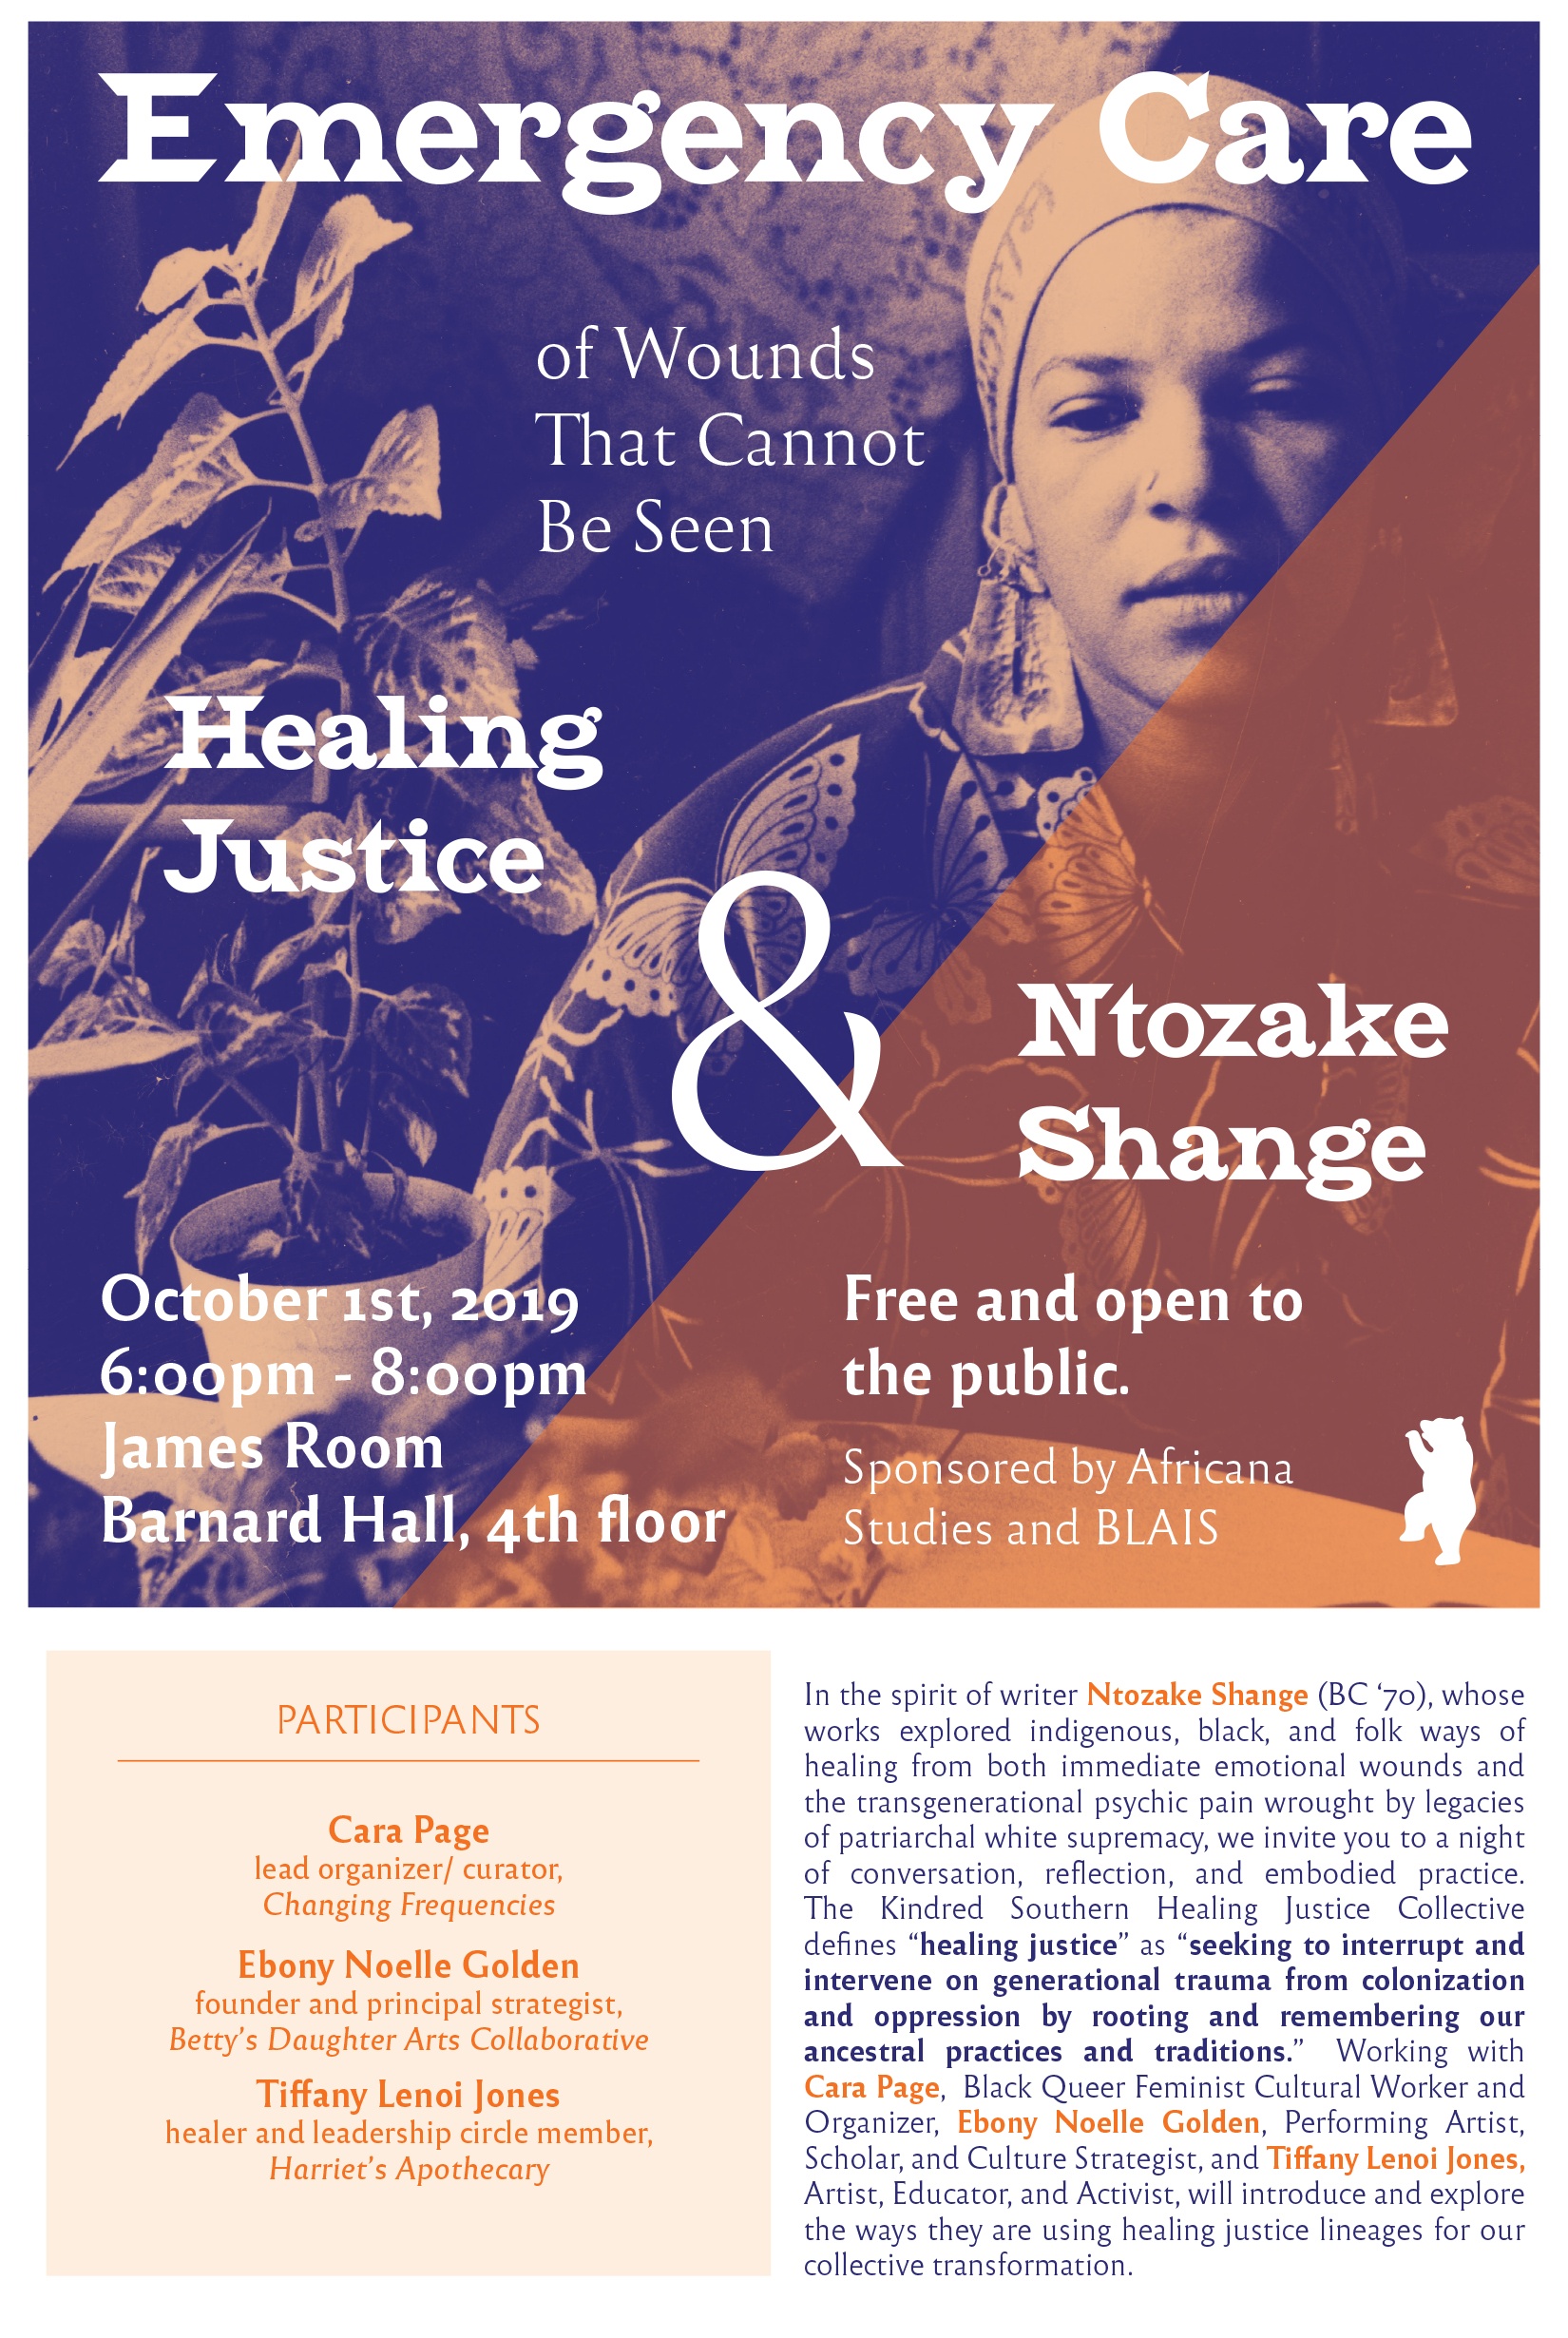 Poster for event featuring a photo of Ntozake Shange surrounded by plants, with a peach/purple color treatment.